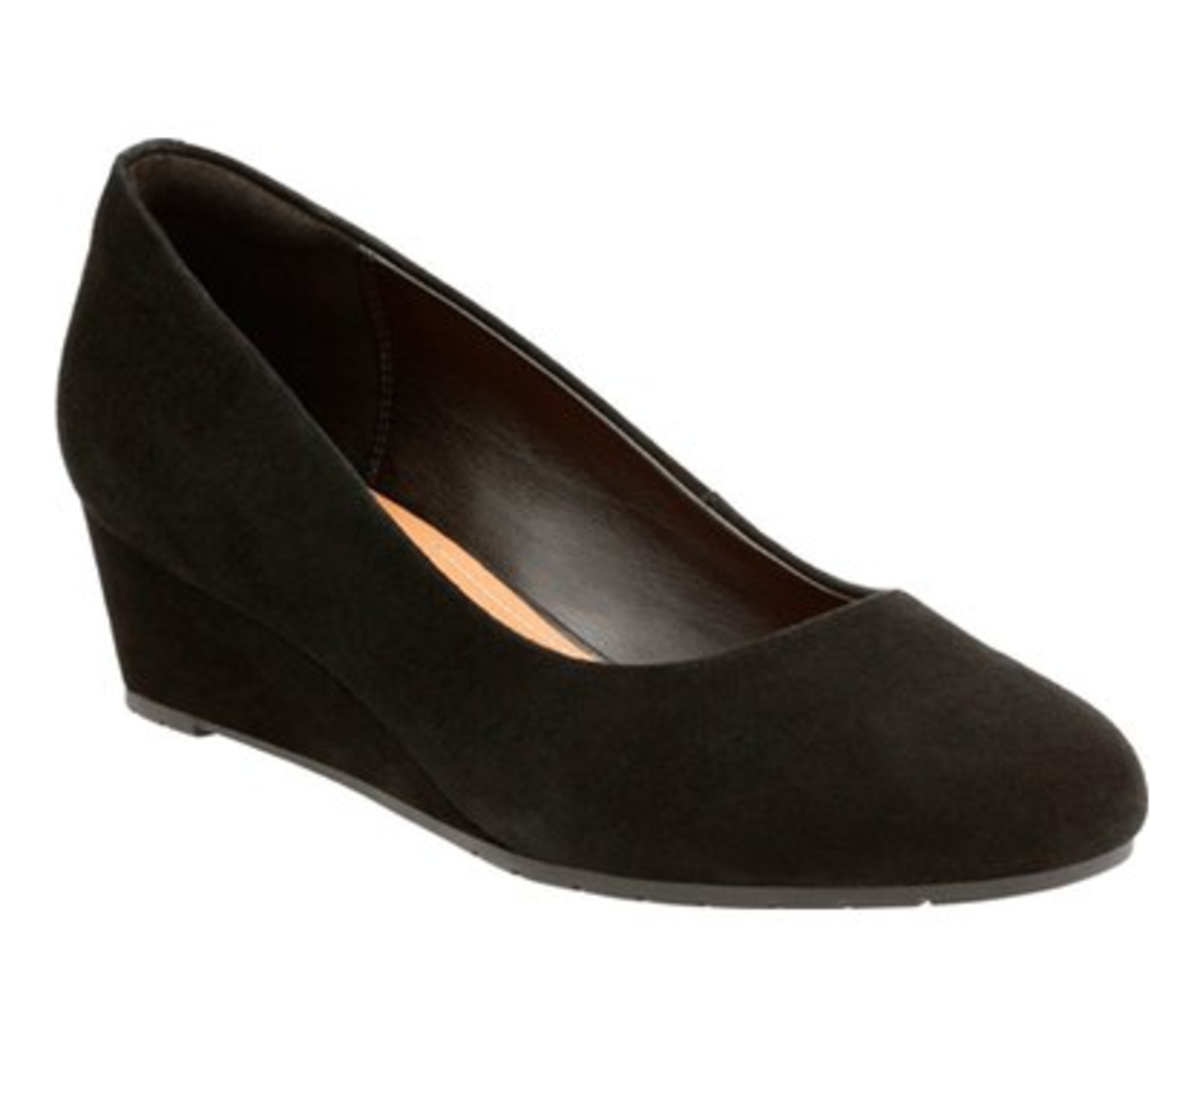 black suede wedge pumps. 1.5 inch heel